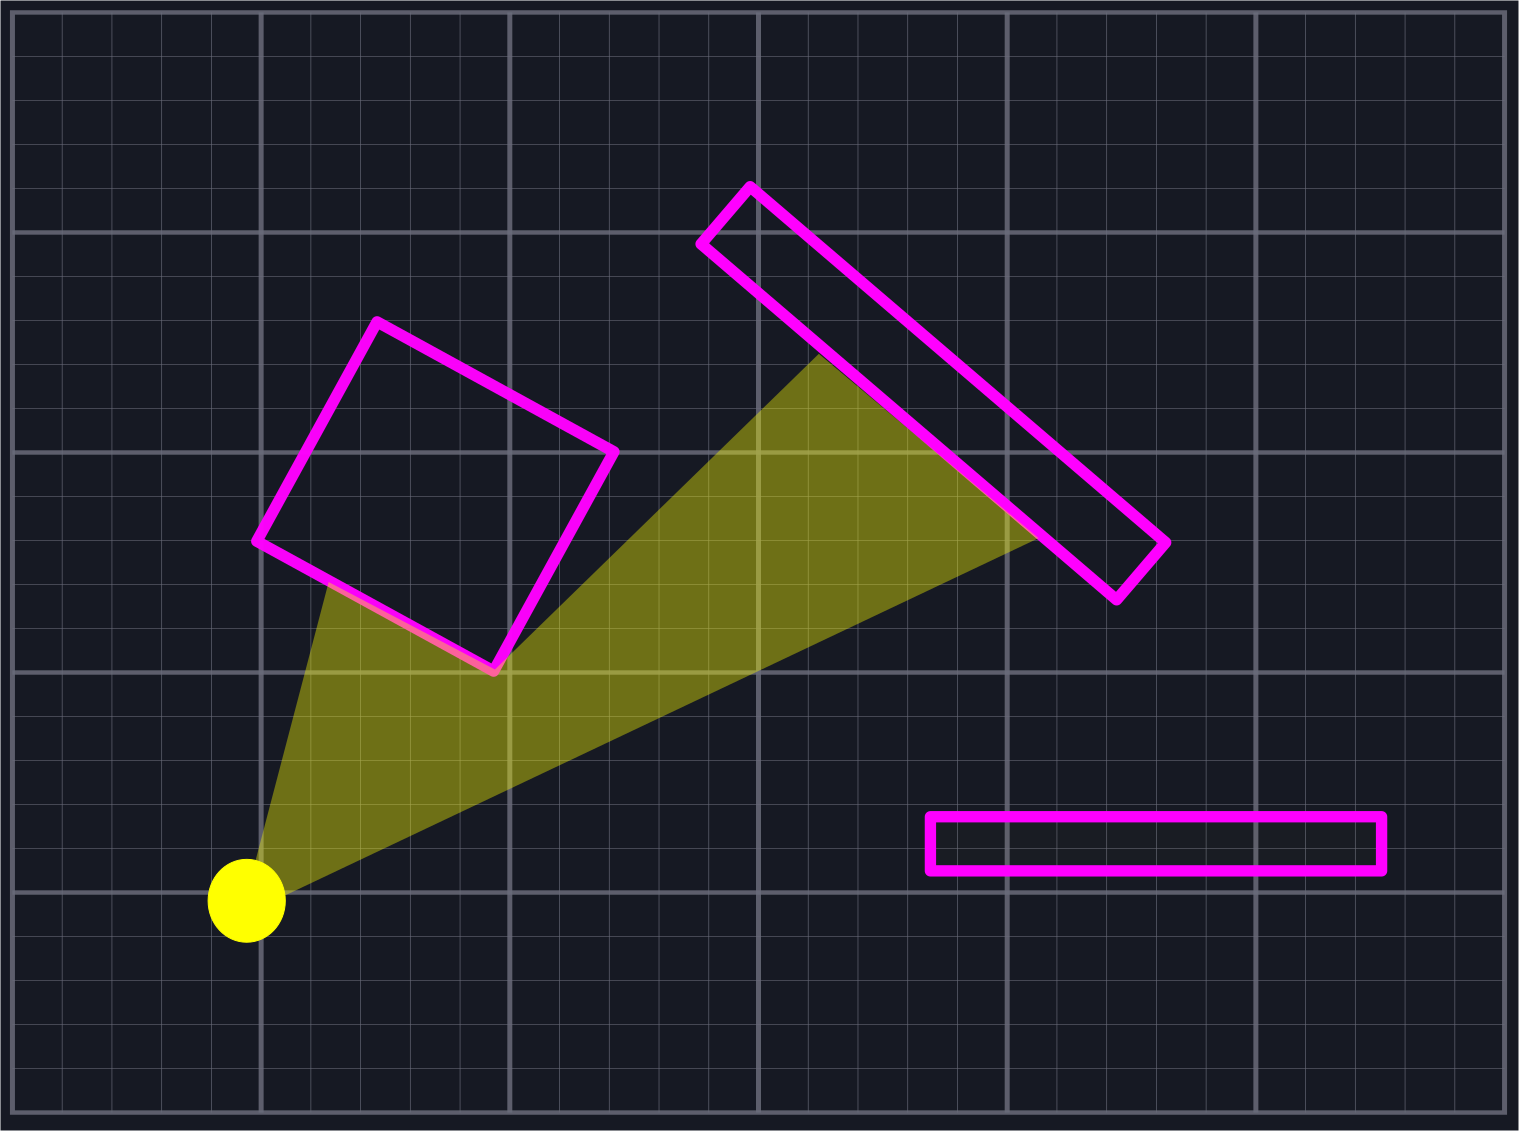 2D Sight Example